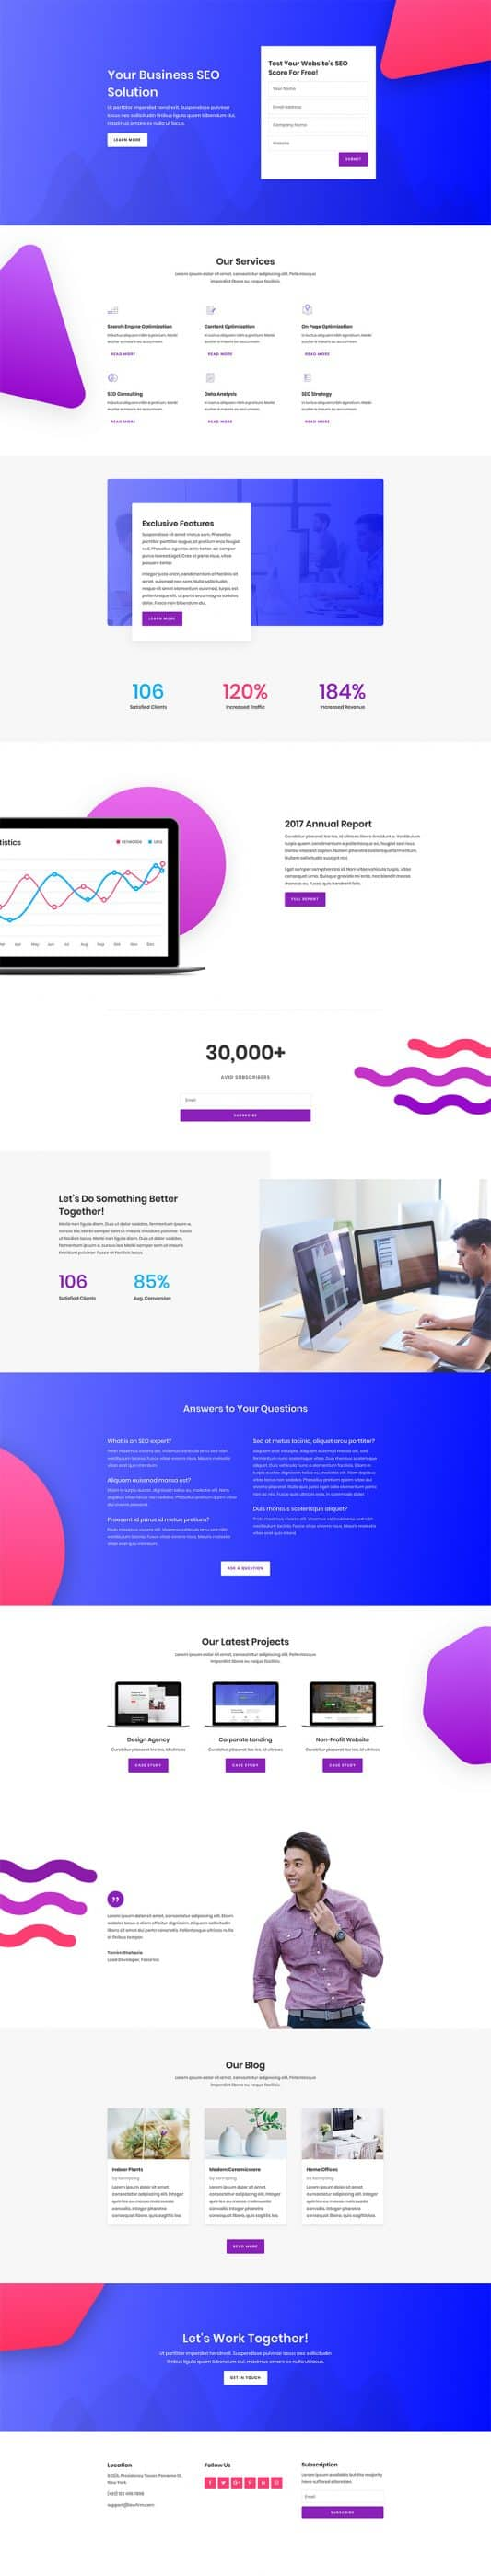 The SEO Agency Page Style: Homepage Design 1